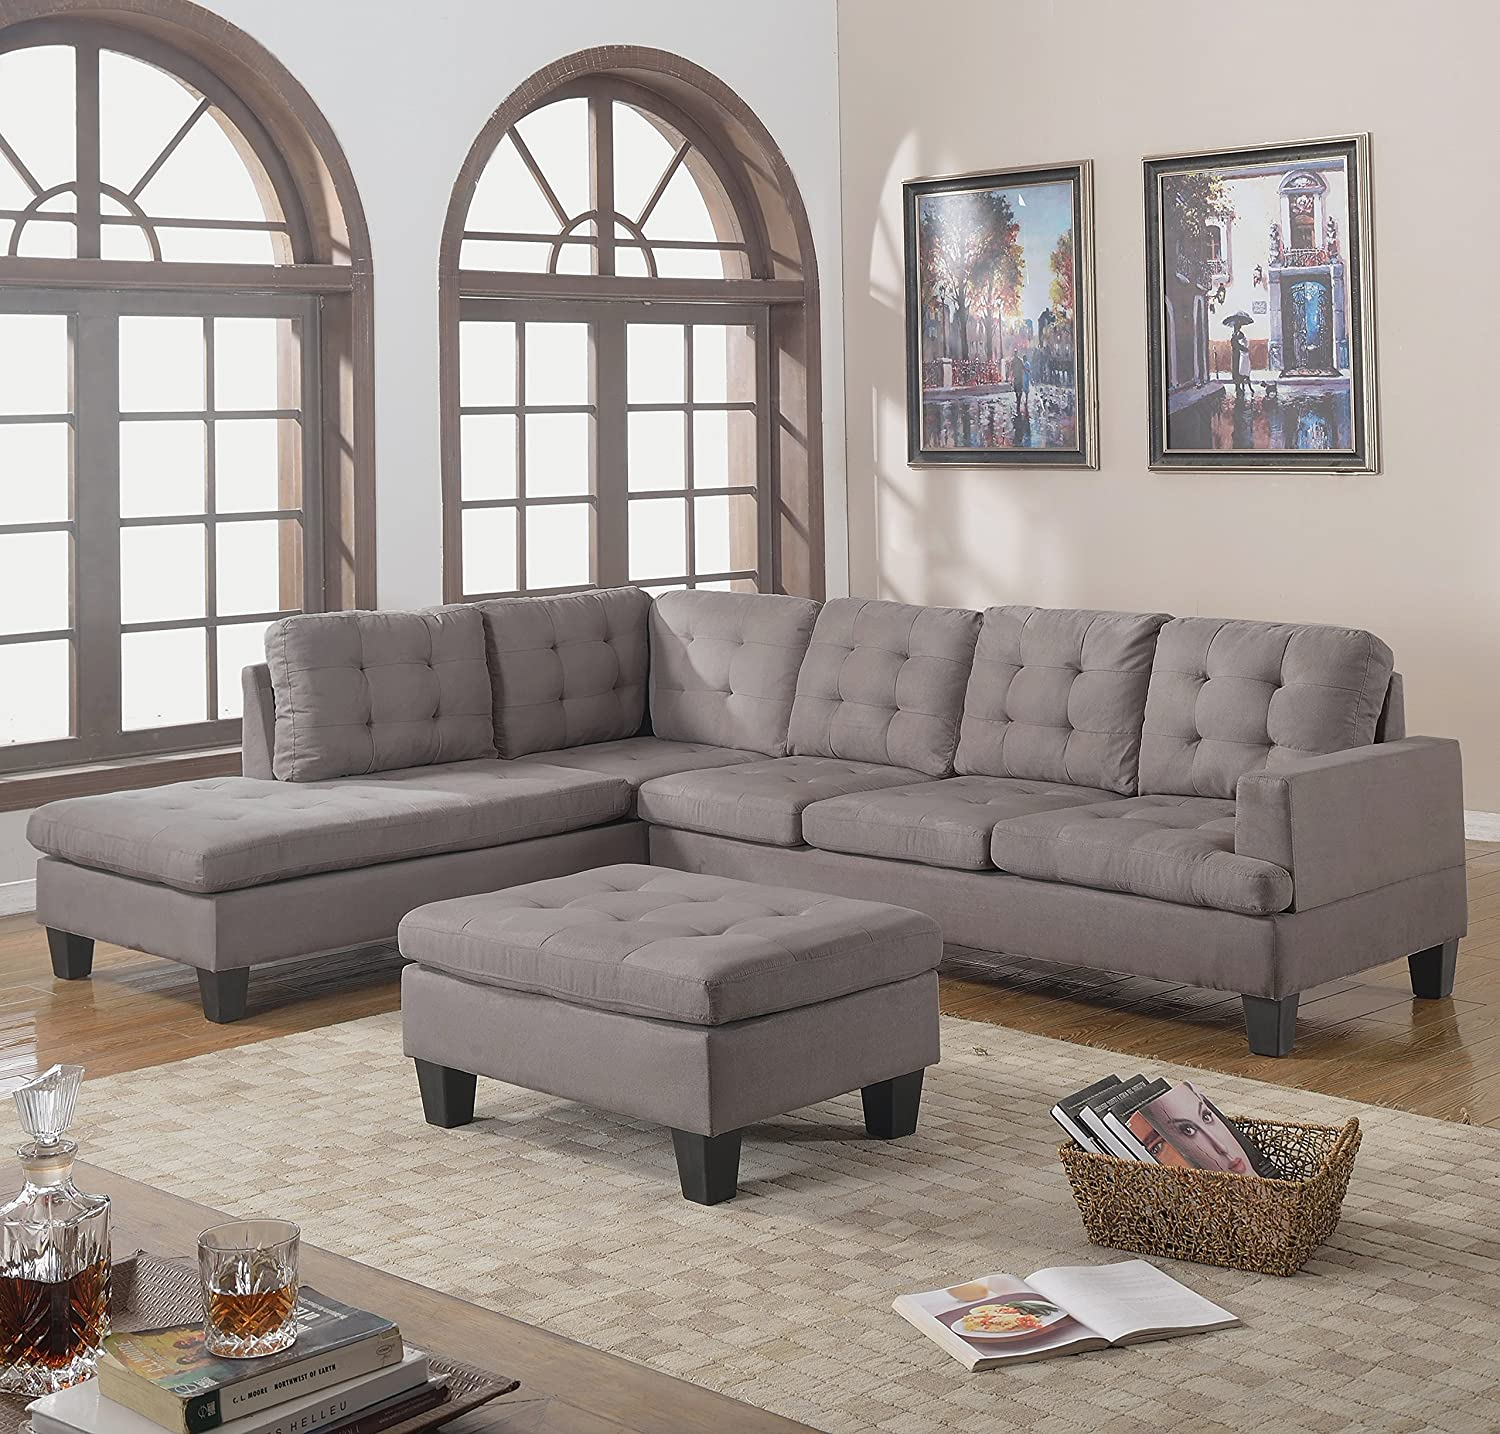 setsgrey sofagrey setgrayheapgrey set power living gray size full photos grey sofa sofas of blue austere cheap with roomgray sets for ideas setgray cheapgrey sleeper entrancing sectional charcoal